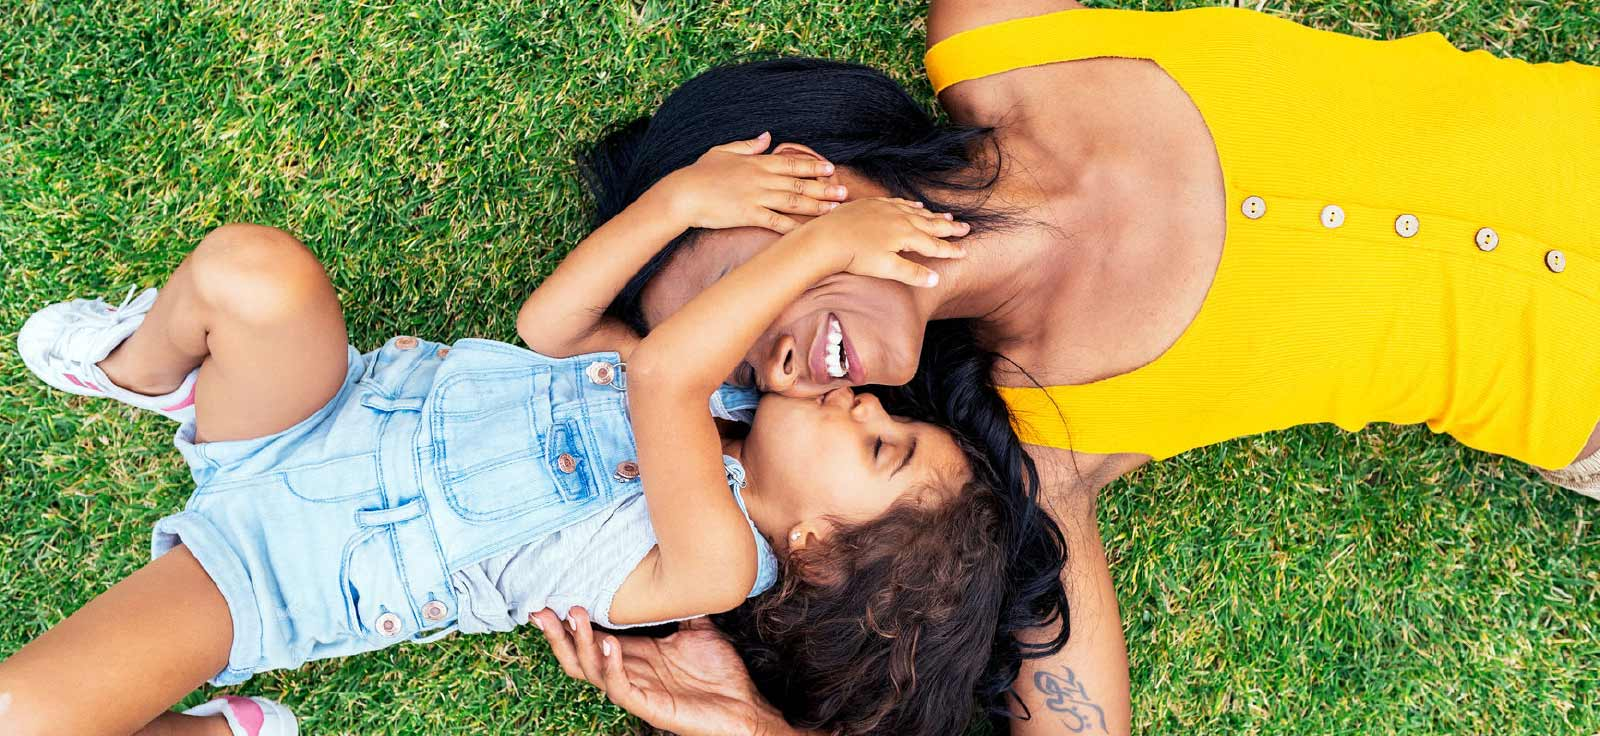 mother and daughter playing on grass